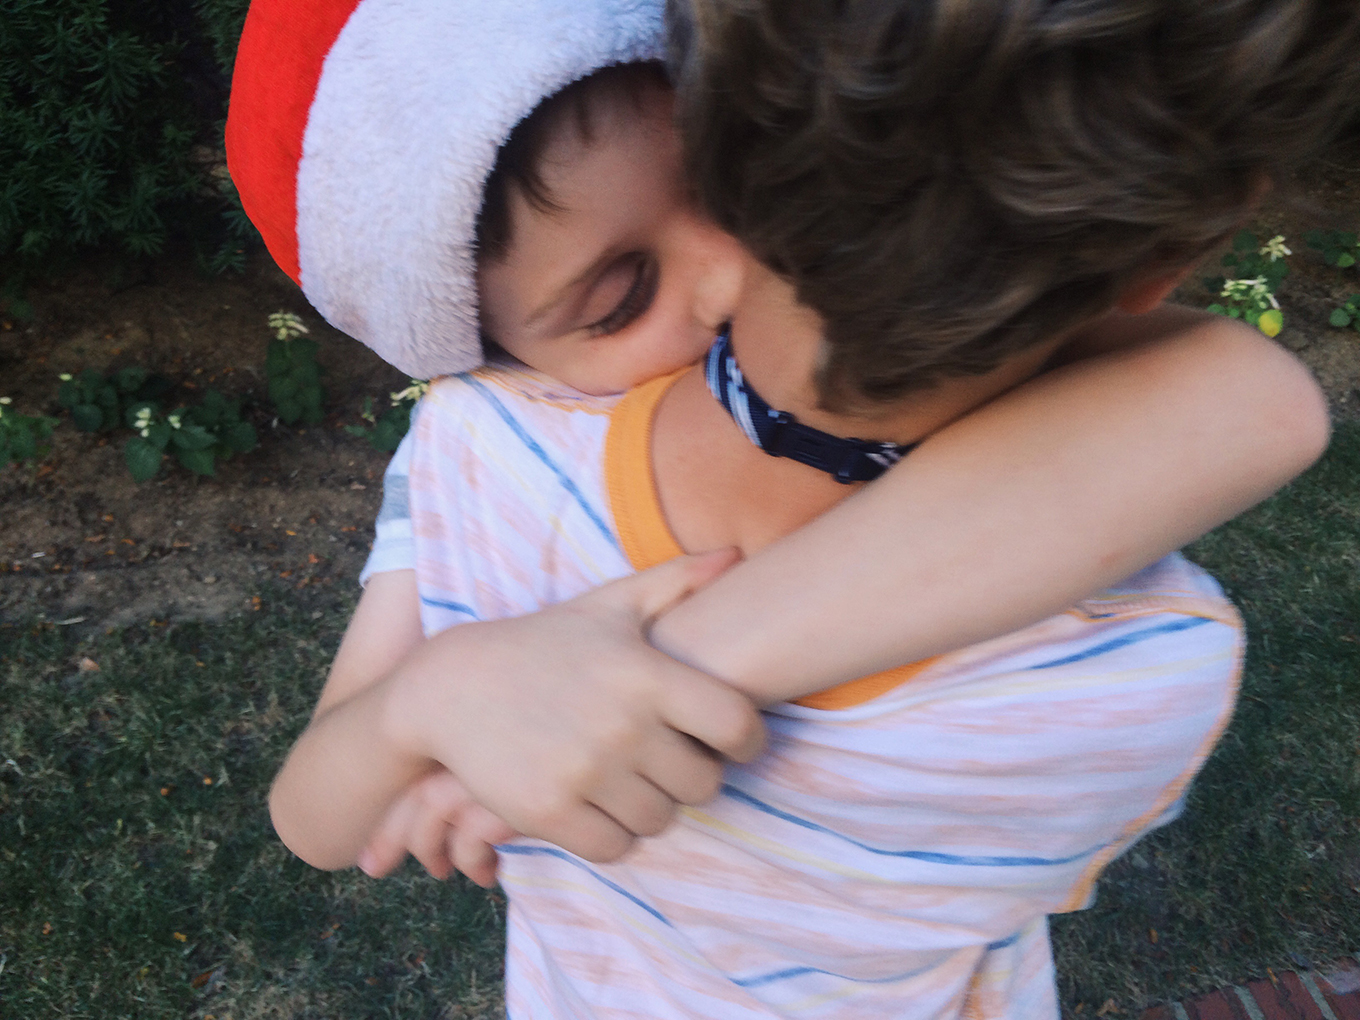 C shows his brother some serious affection